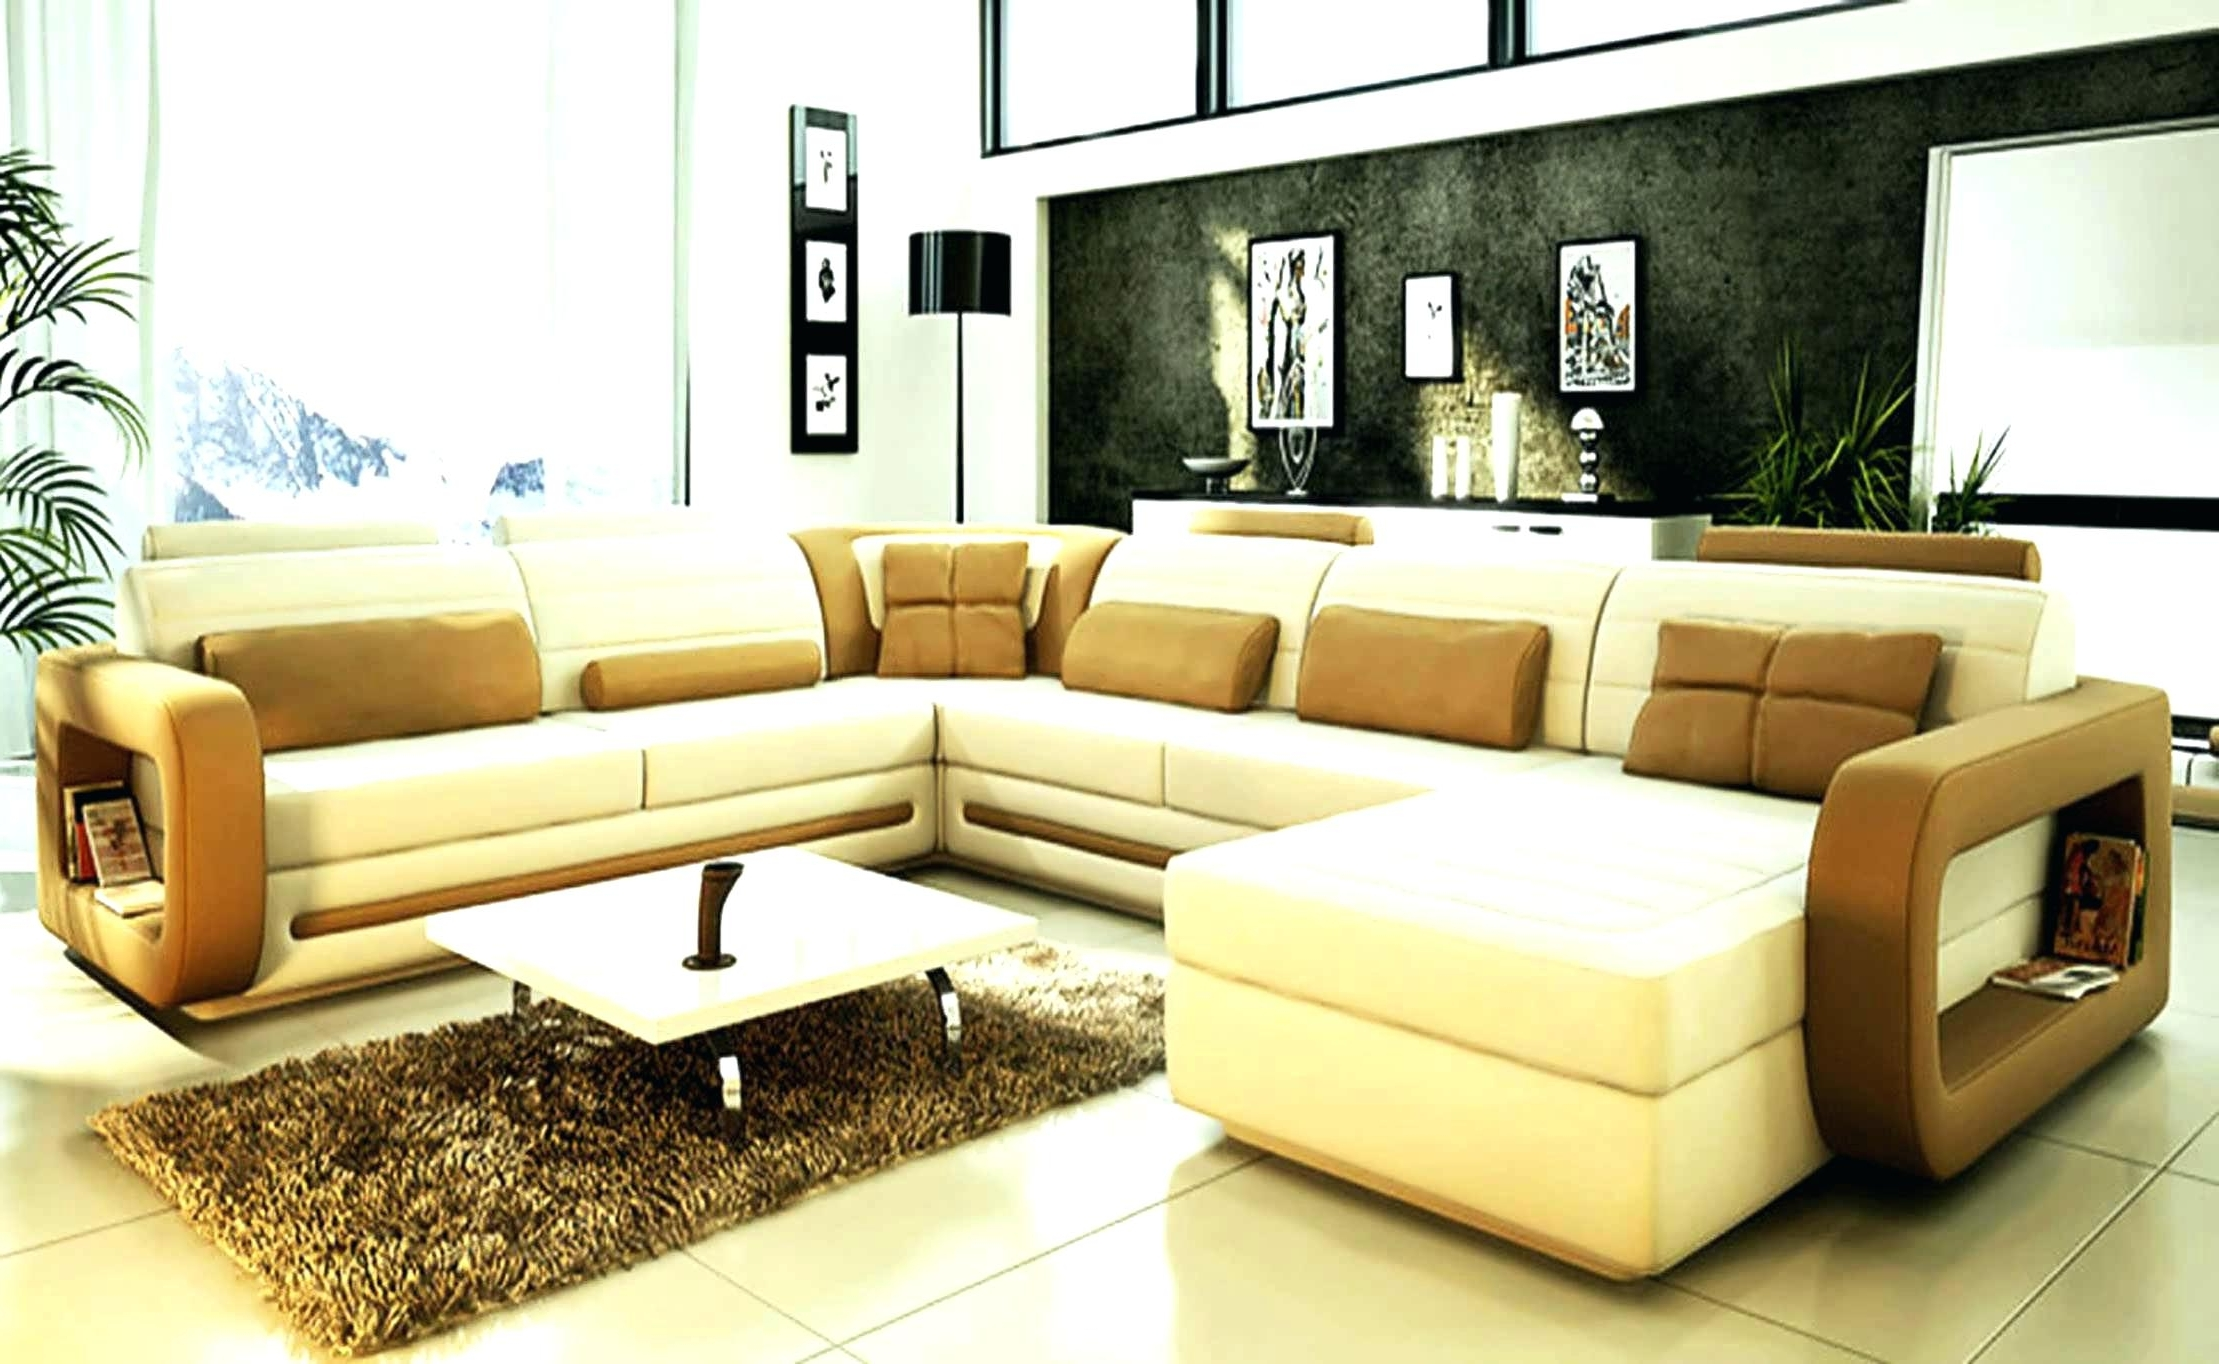 Cream Colored Sofas For Most Recent Cream Colored Sofa Pillows Throw Pillow Covers Table (View 6 of 20)